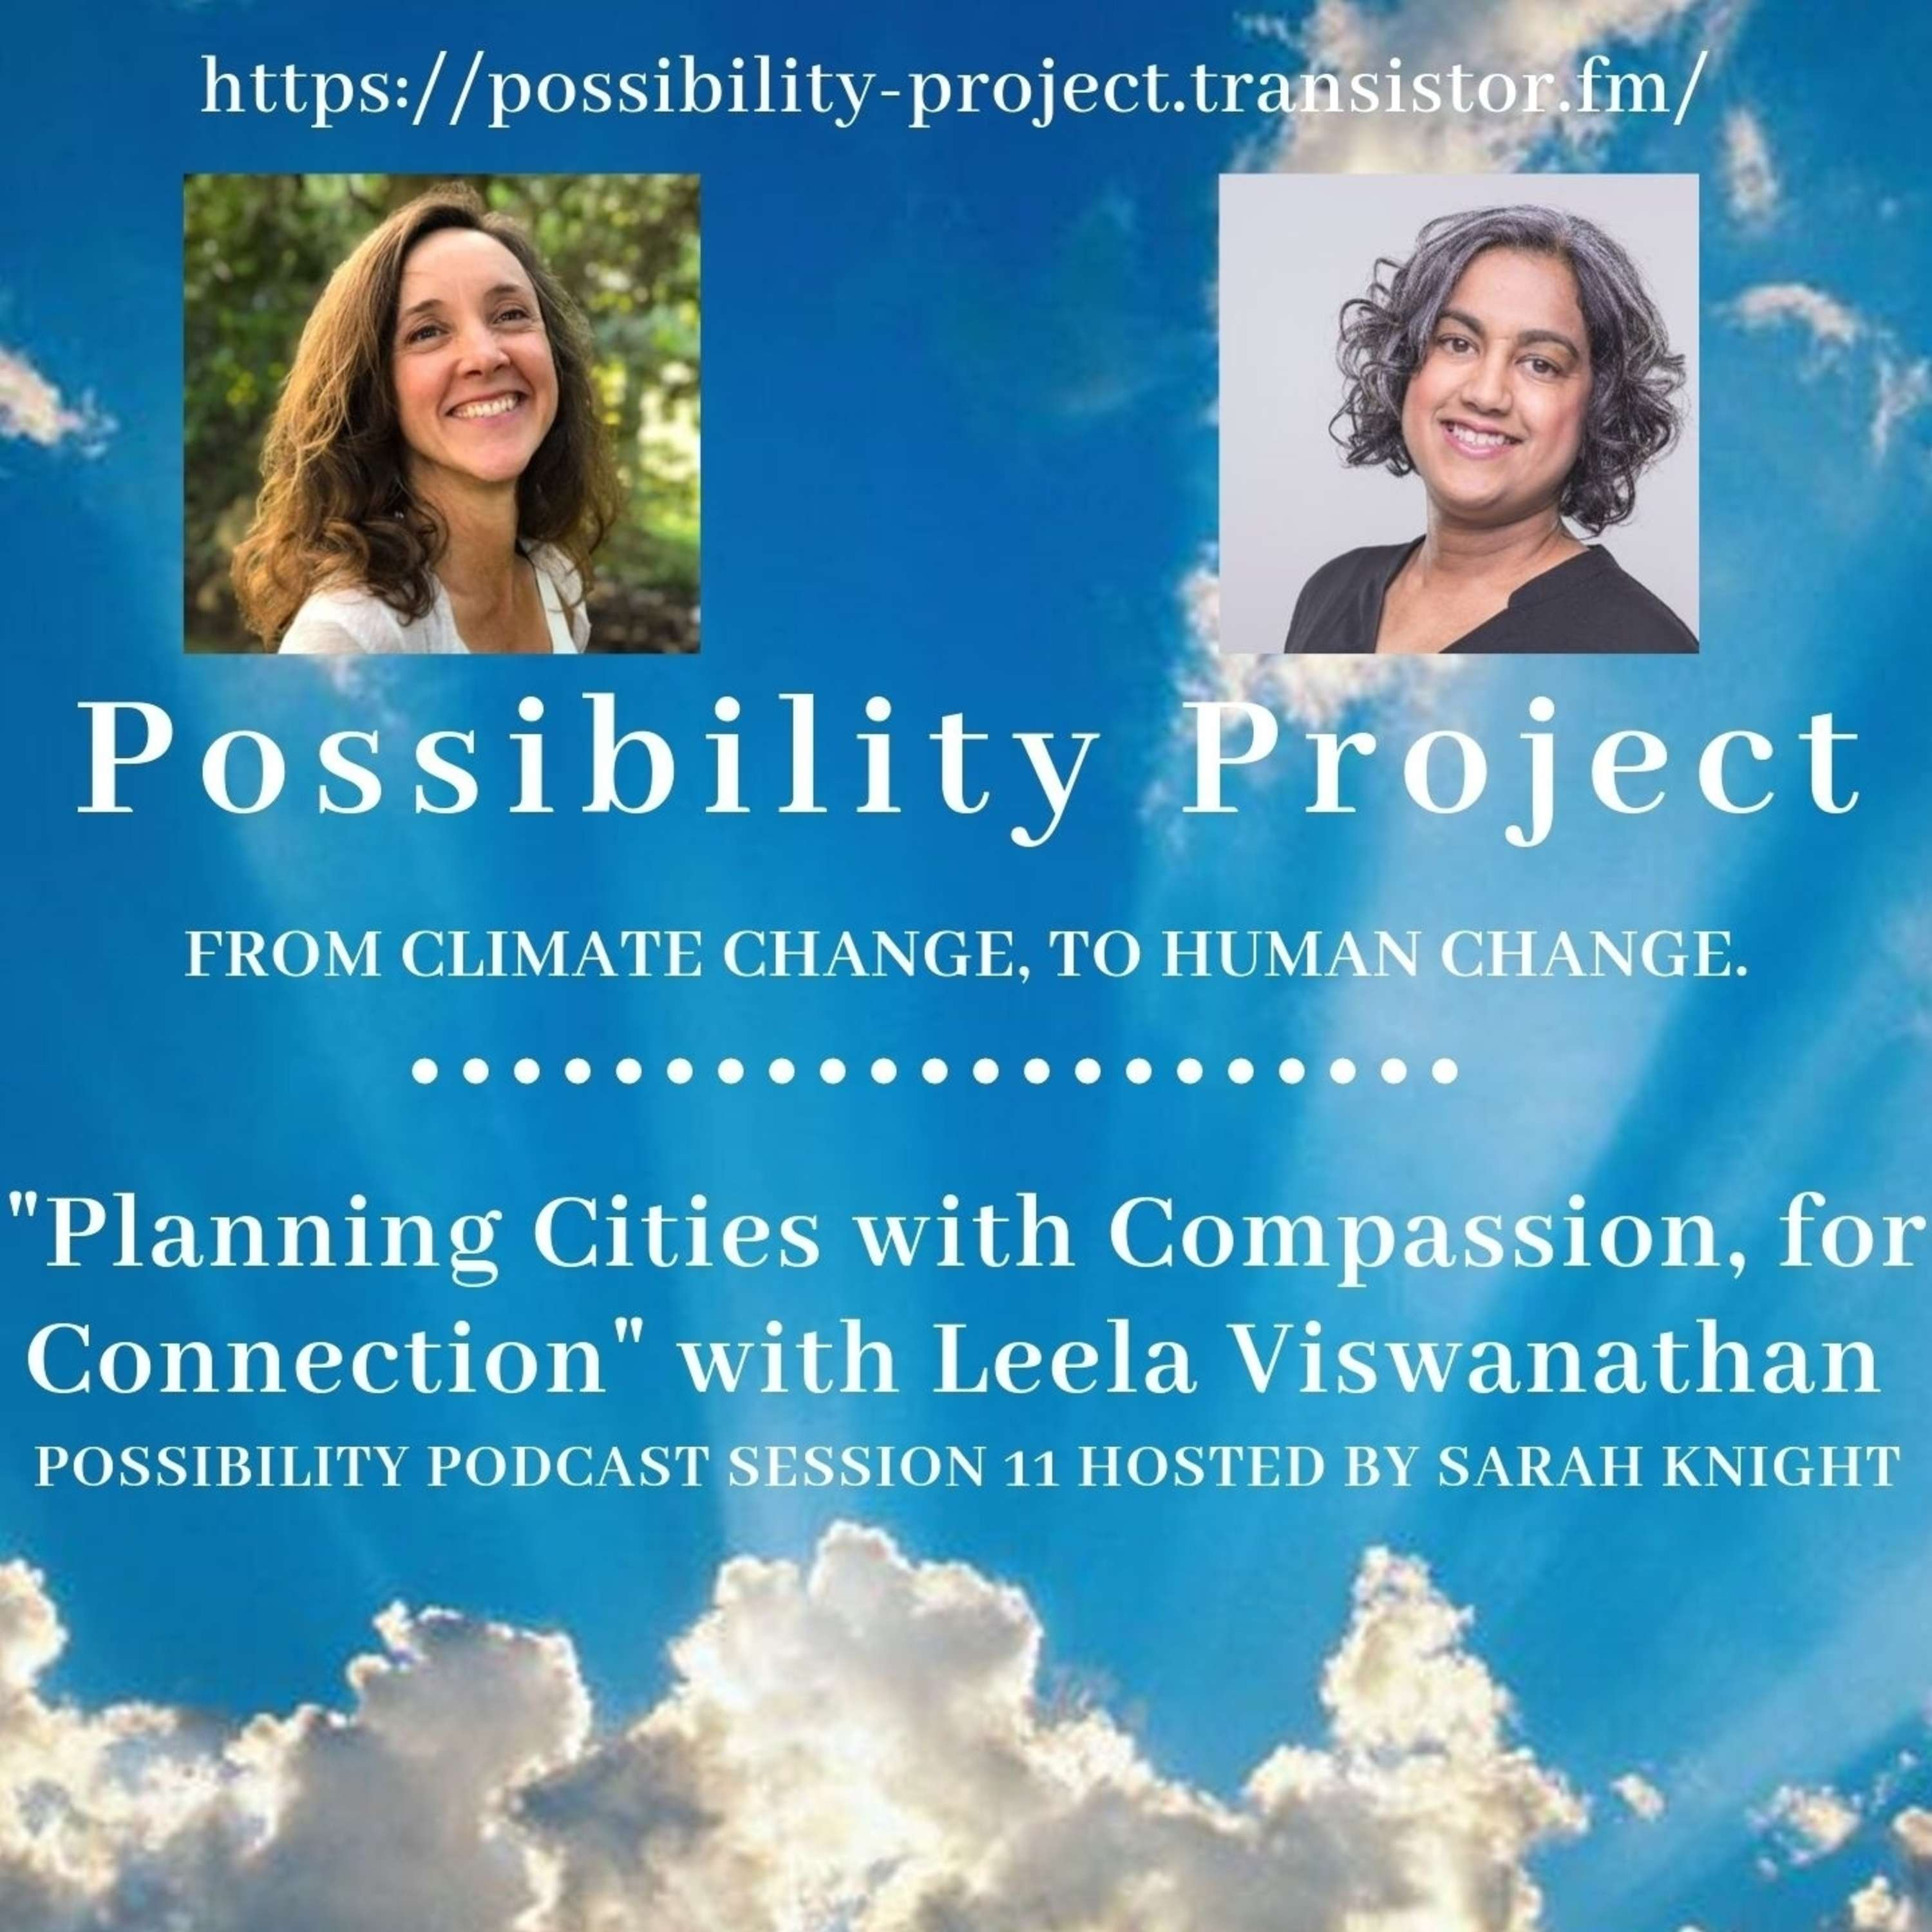 Planning Cities With Compassion, For Connection. Possibility Podcast Session 11